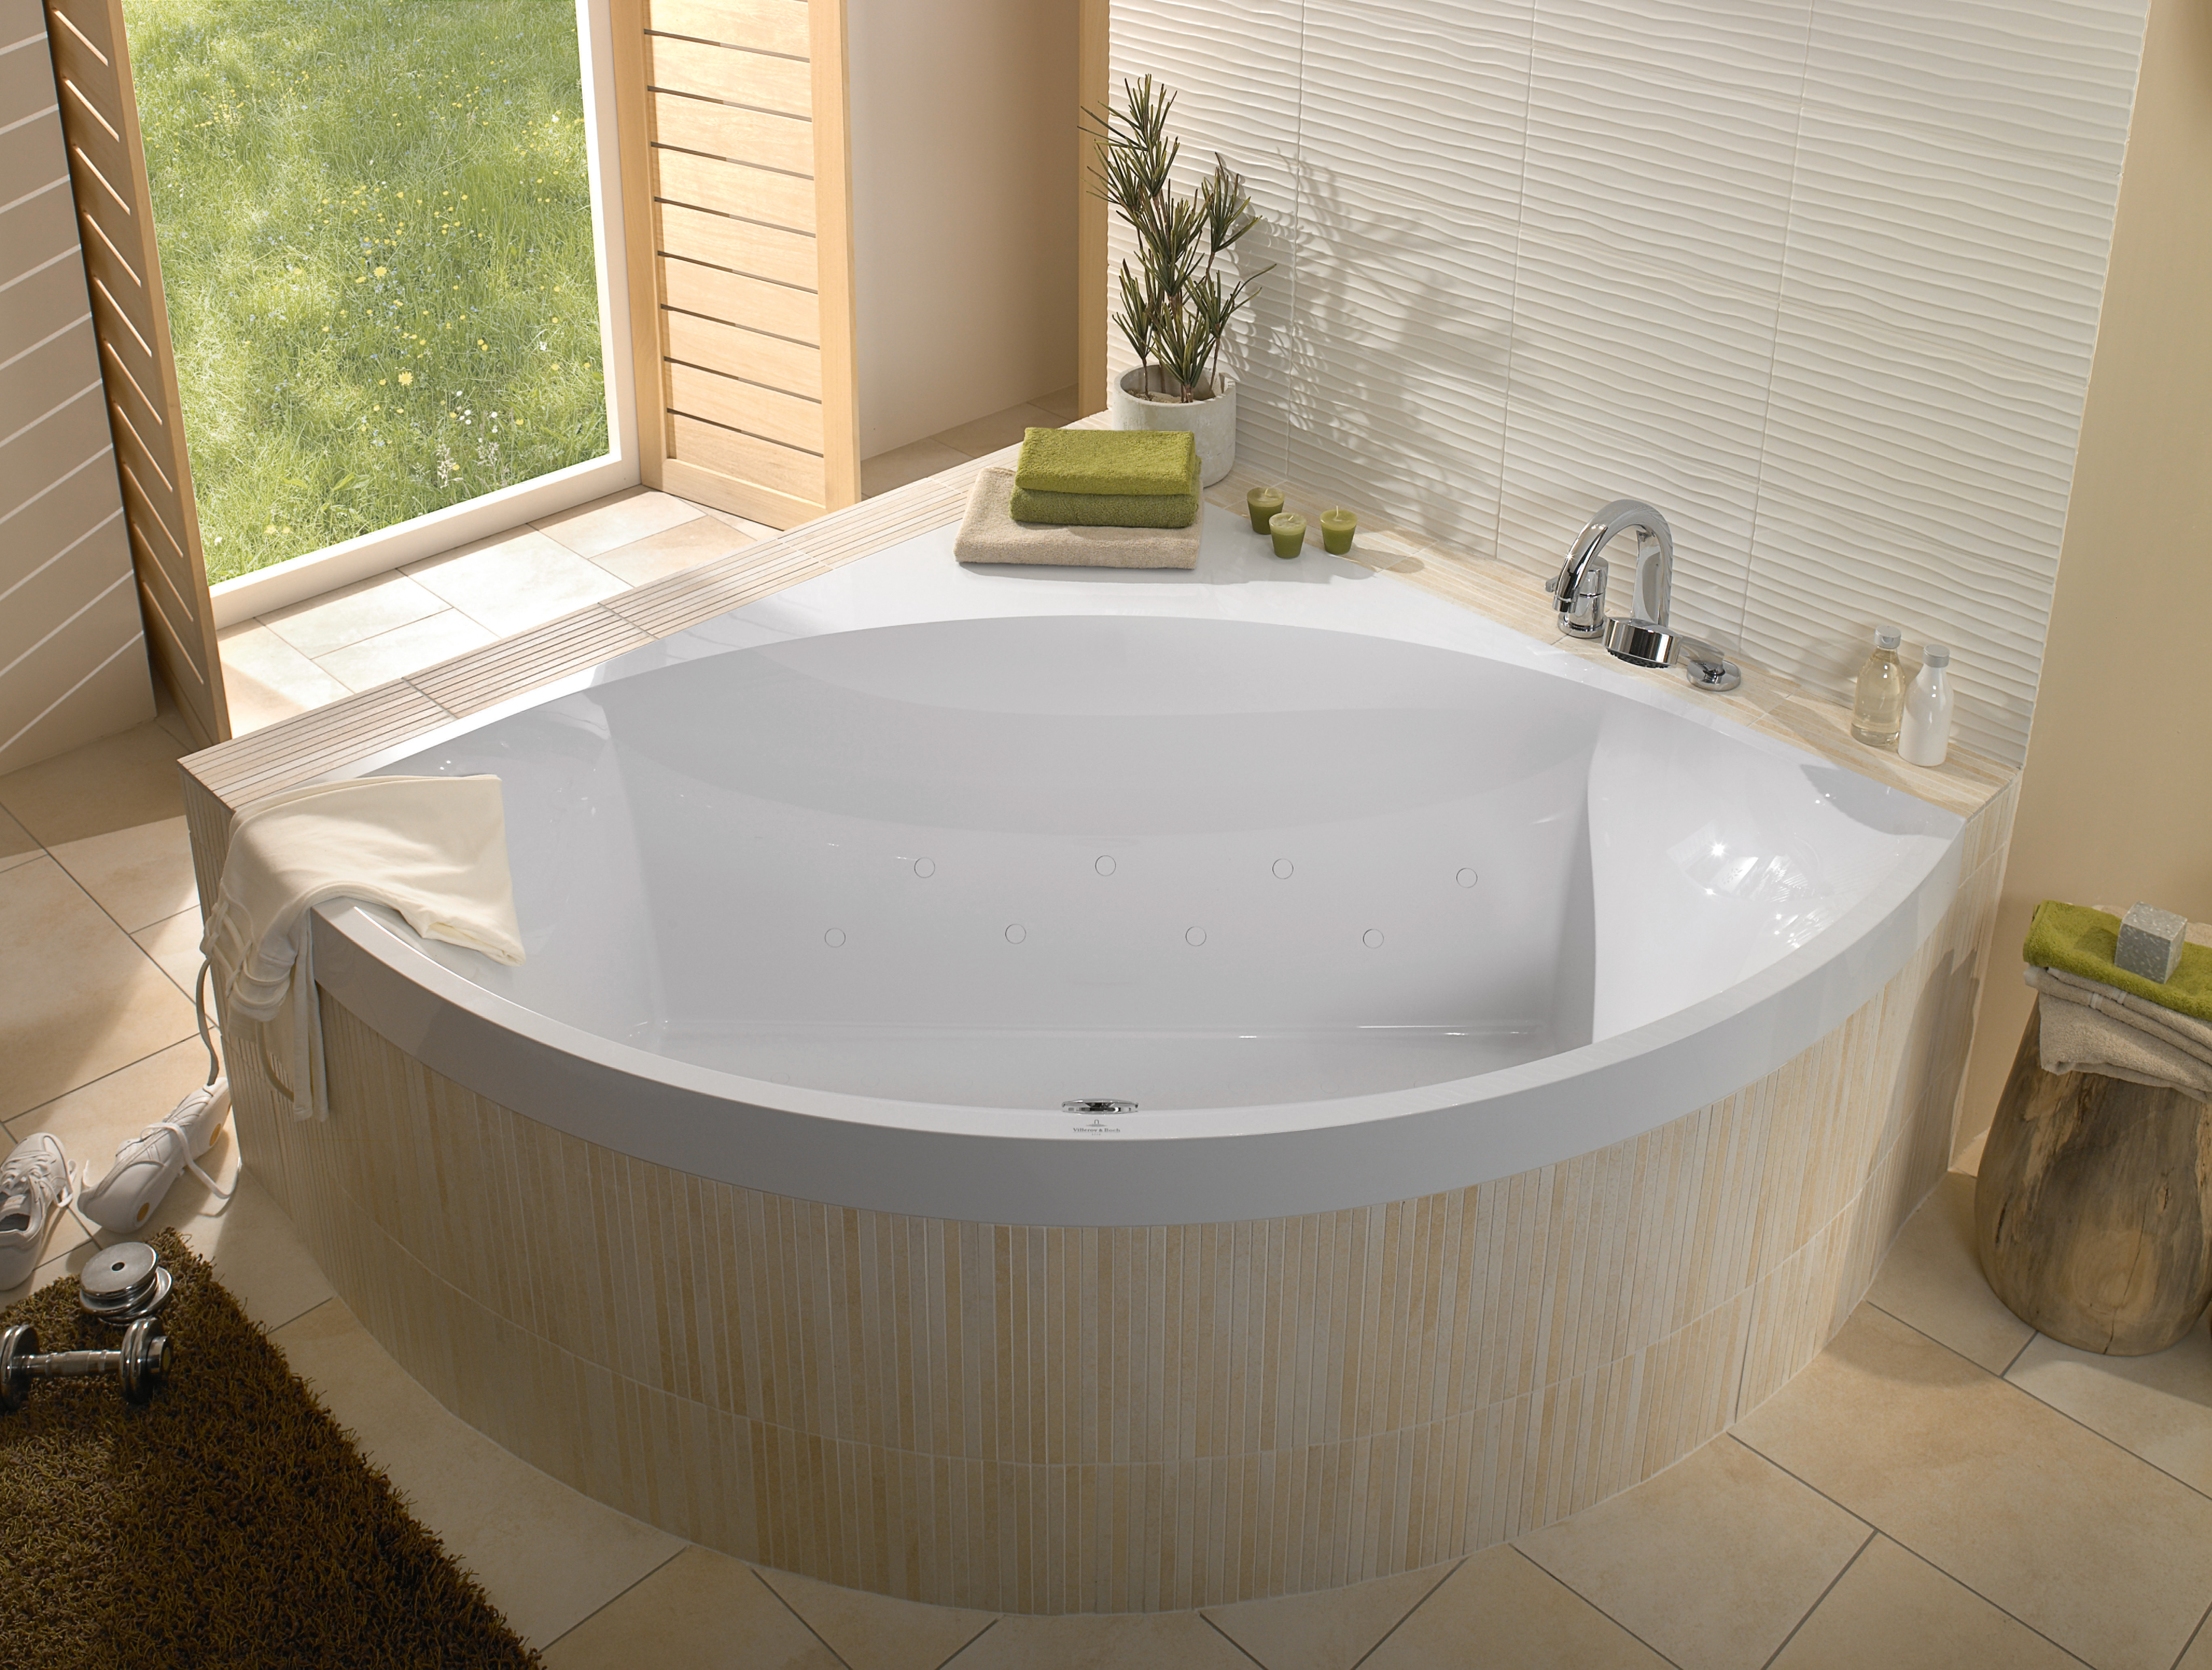 Squaro Bath, Baths, Corner baths